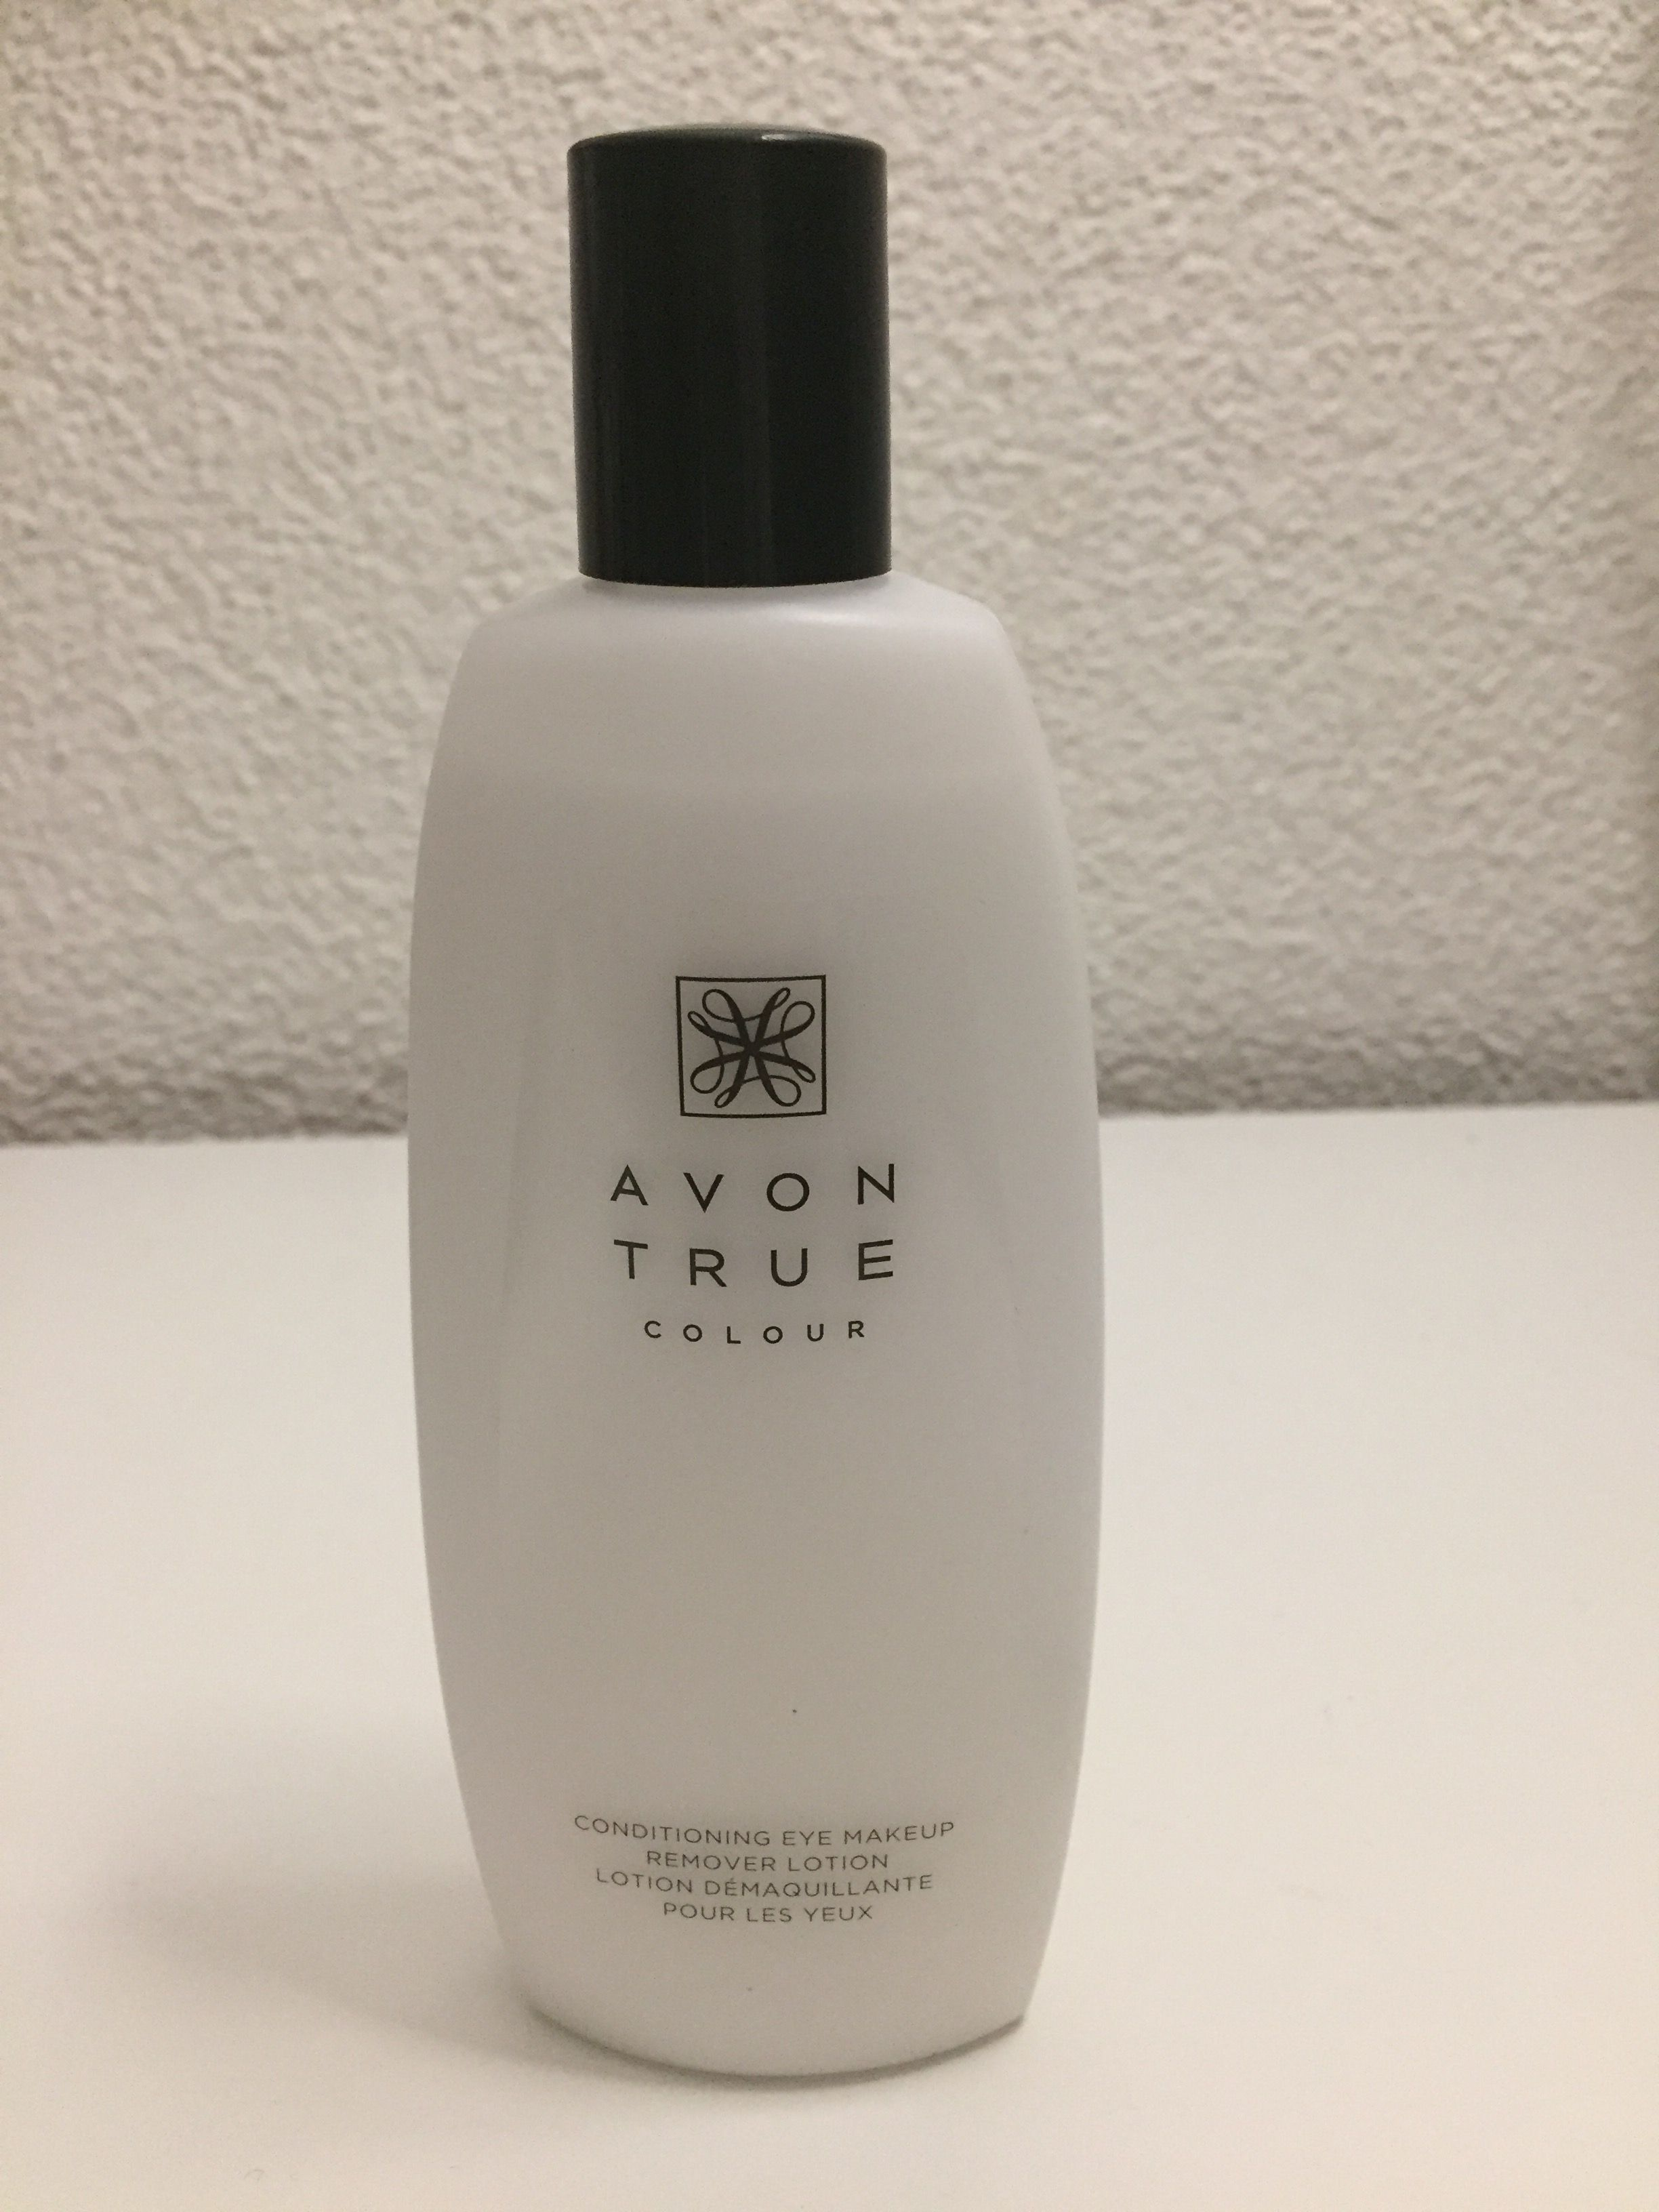 Avon True colour Conditioning eye makeup remover lotion